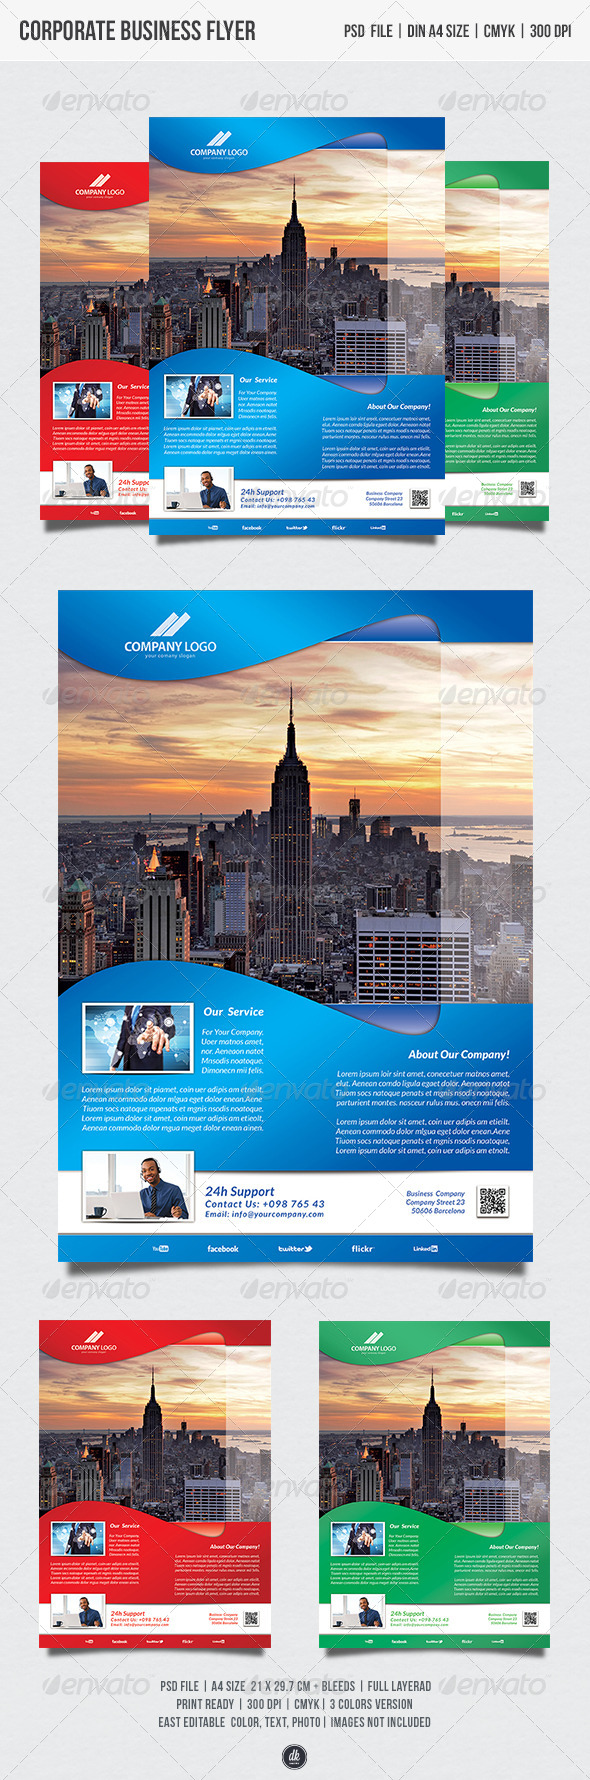 GraphicRiver Corporate Business Flyer 5474491